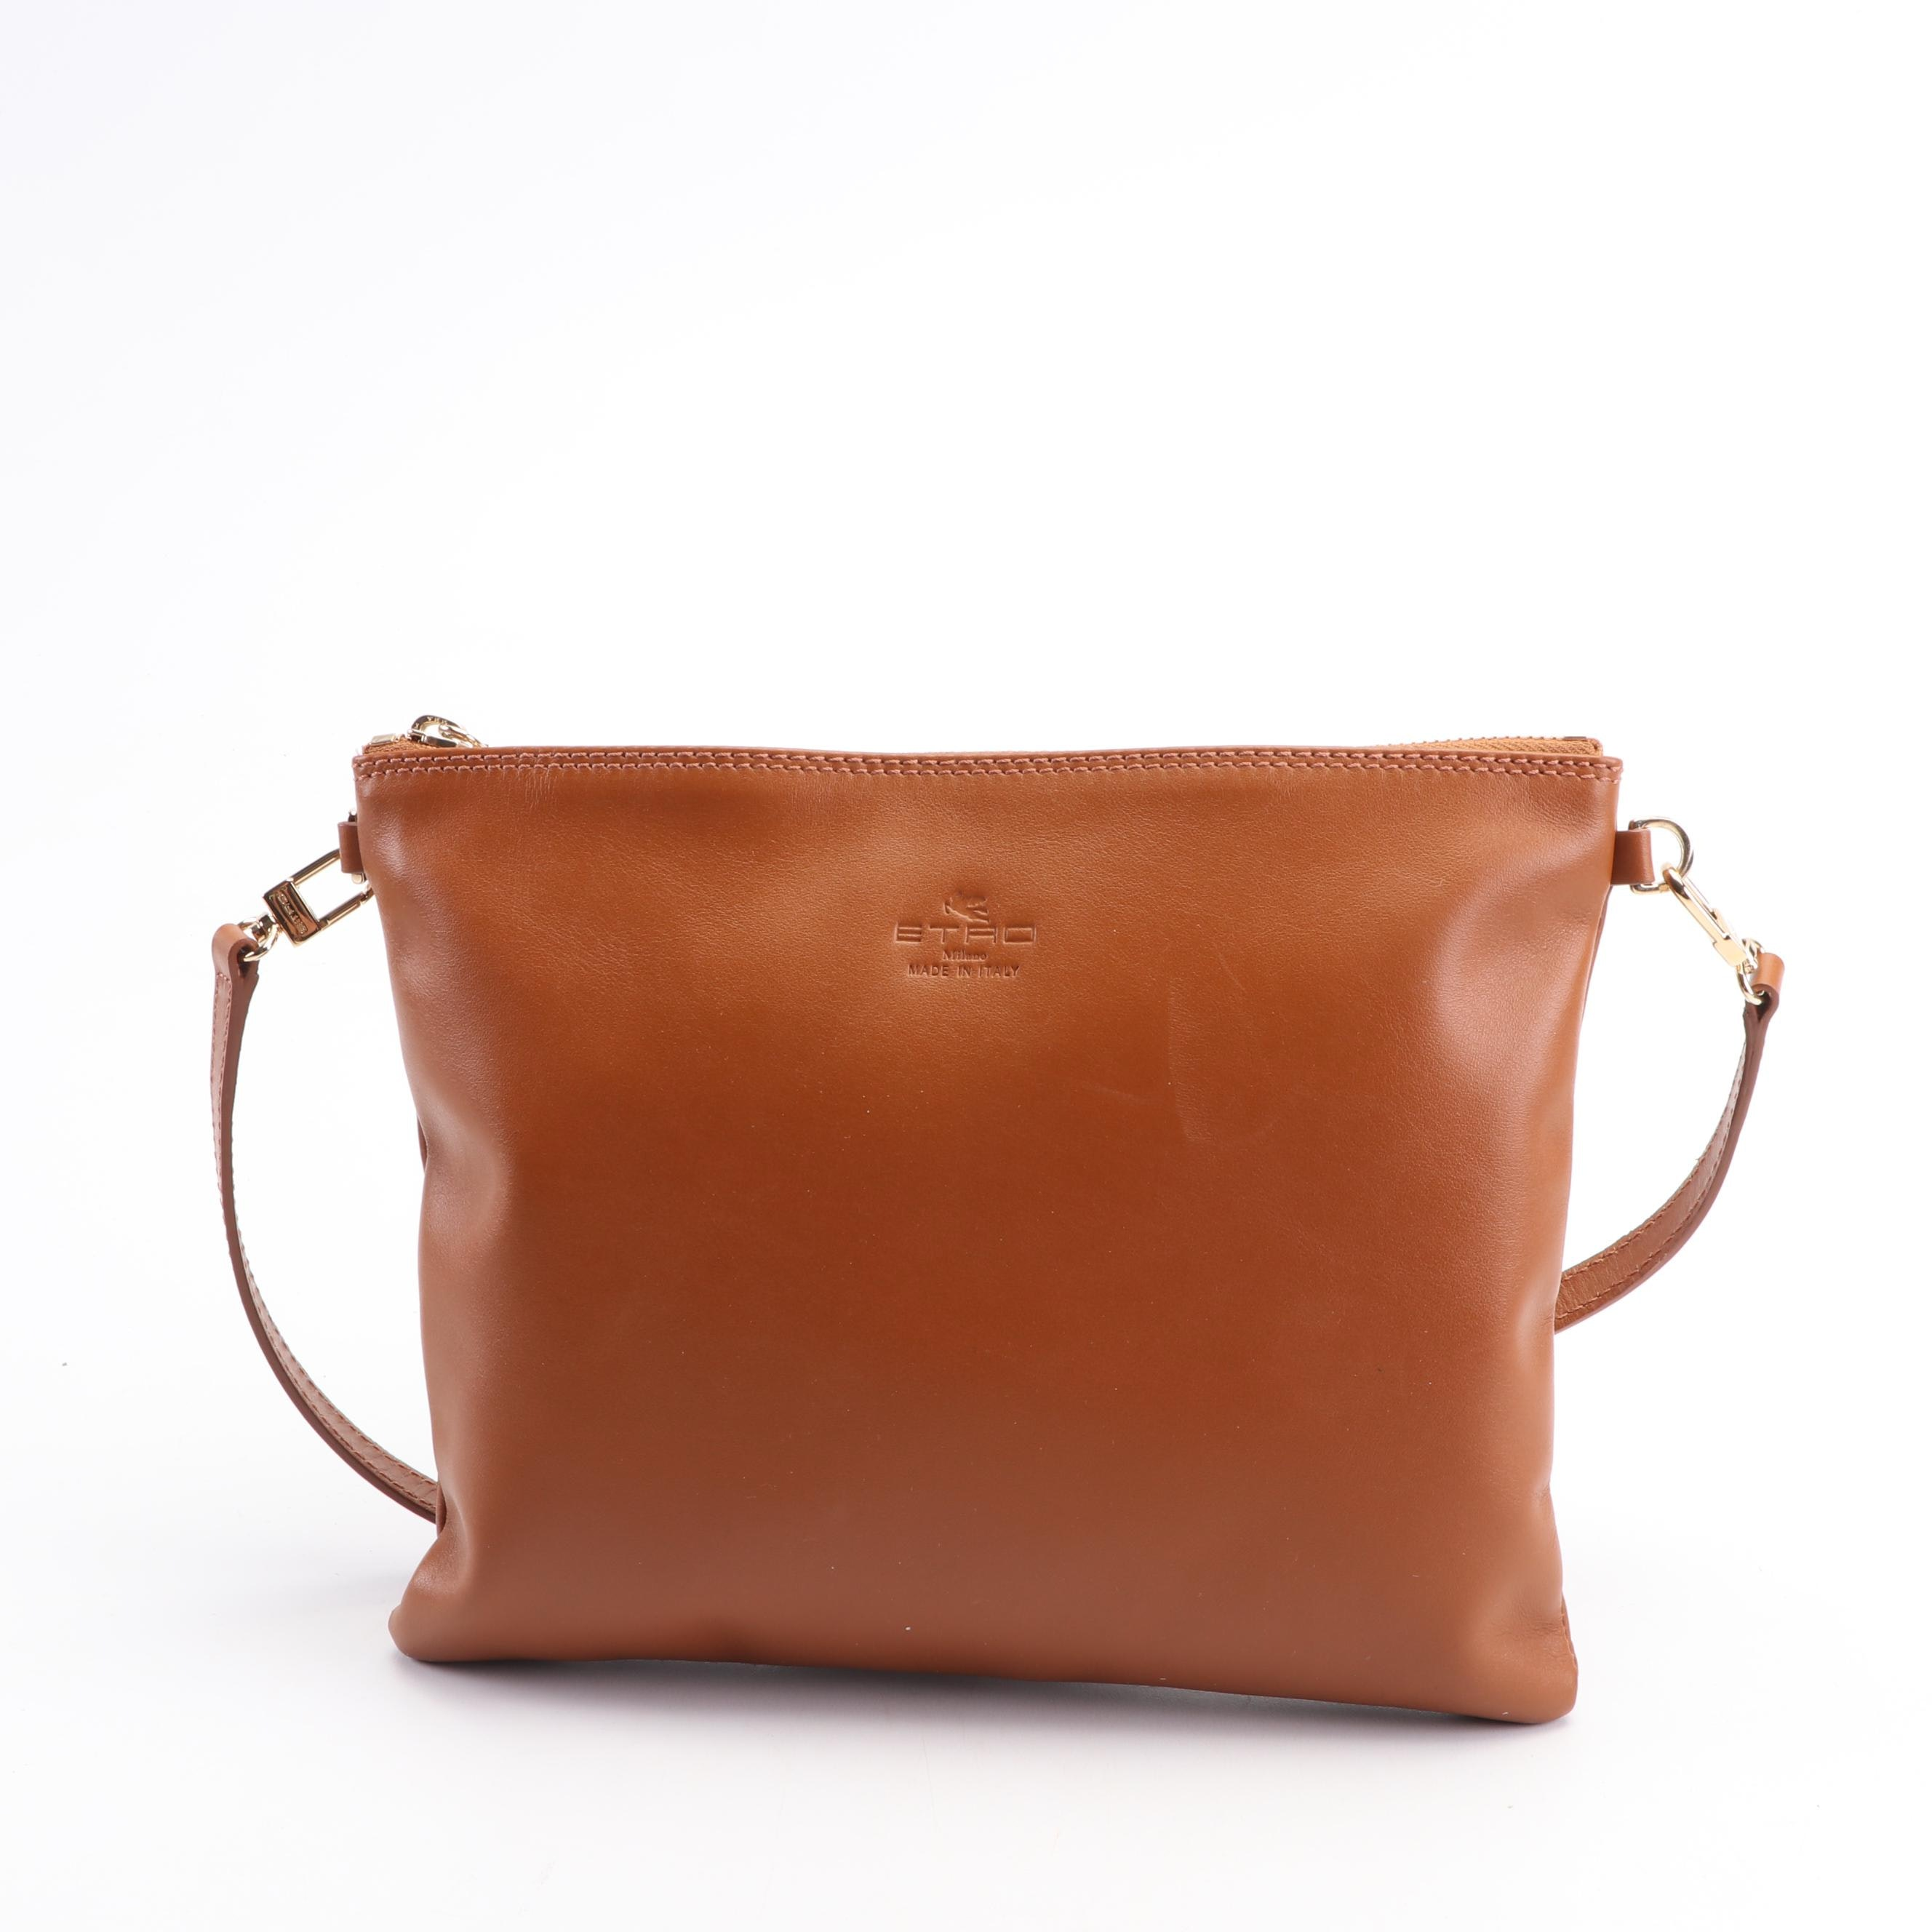 Etro Milano Cognac Leather Convertible Shoulder Bag, Made in Italy